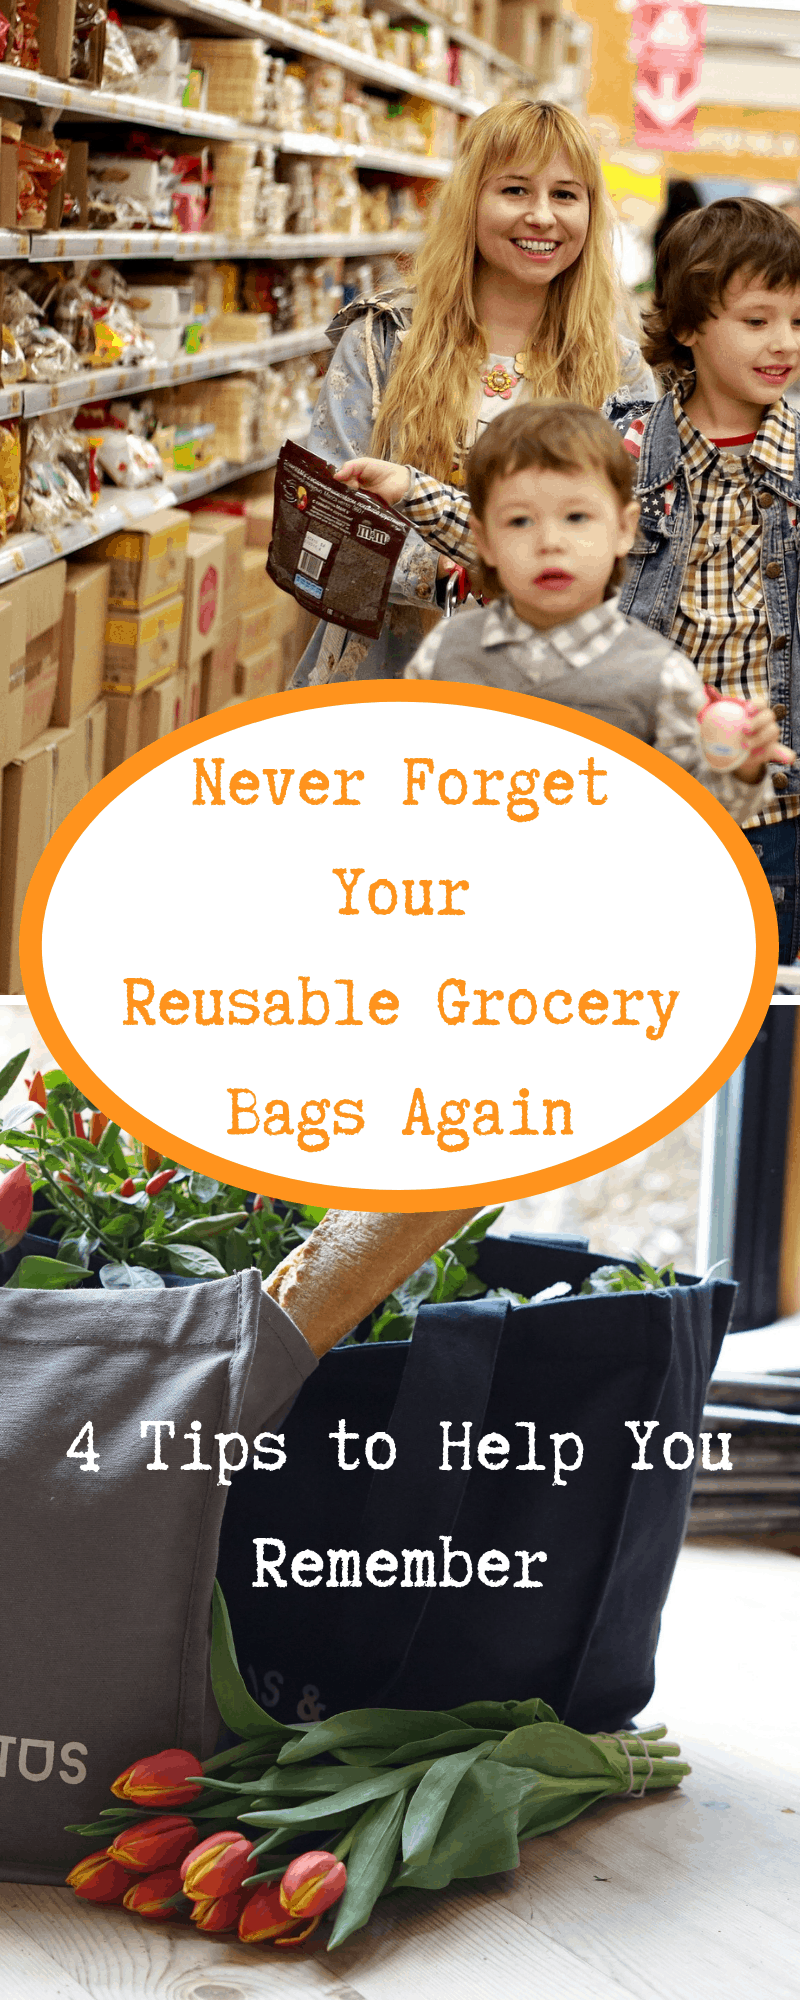 Never Forget Your Reusable Store Bags Again